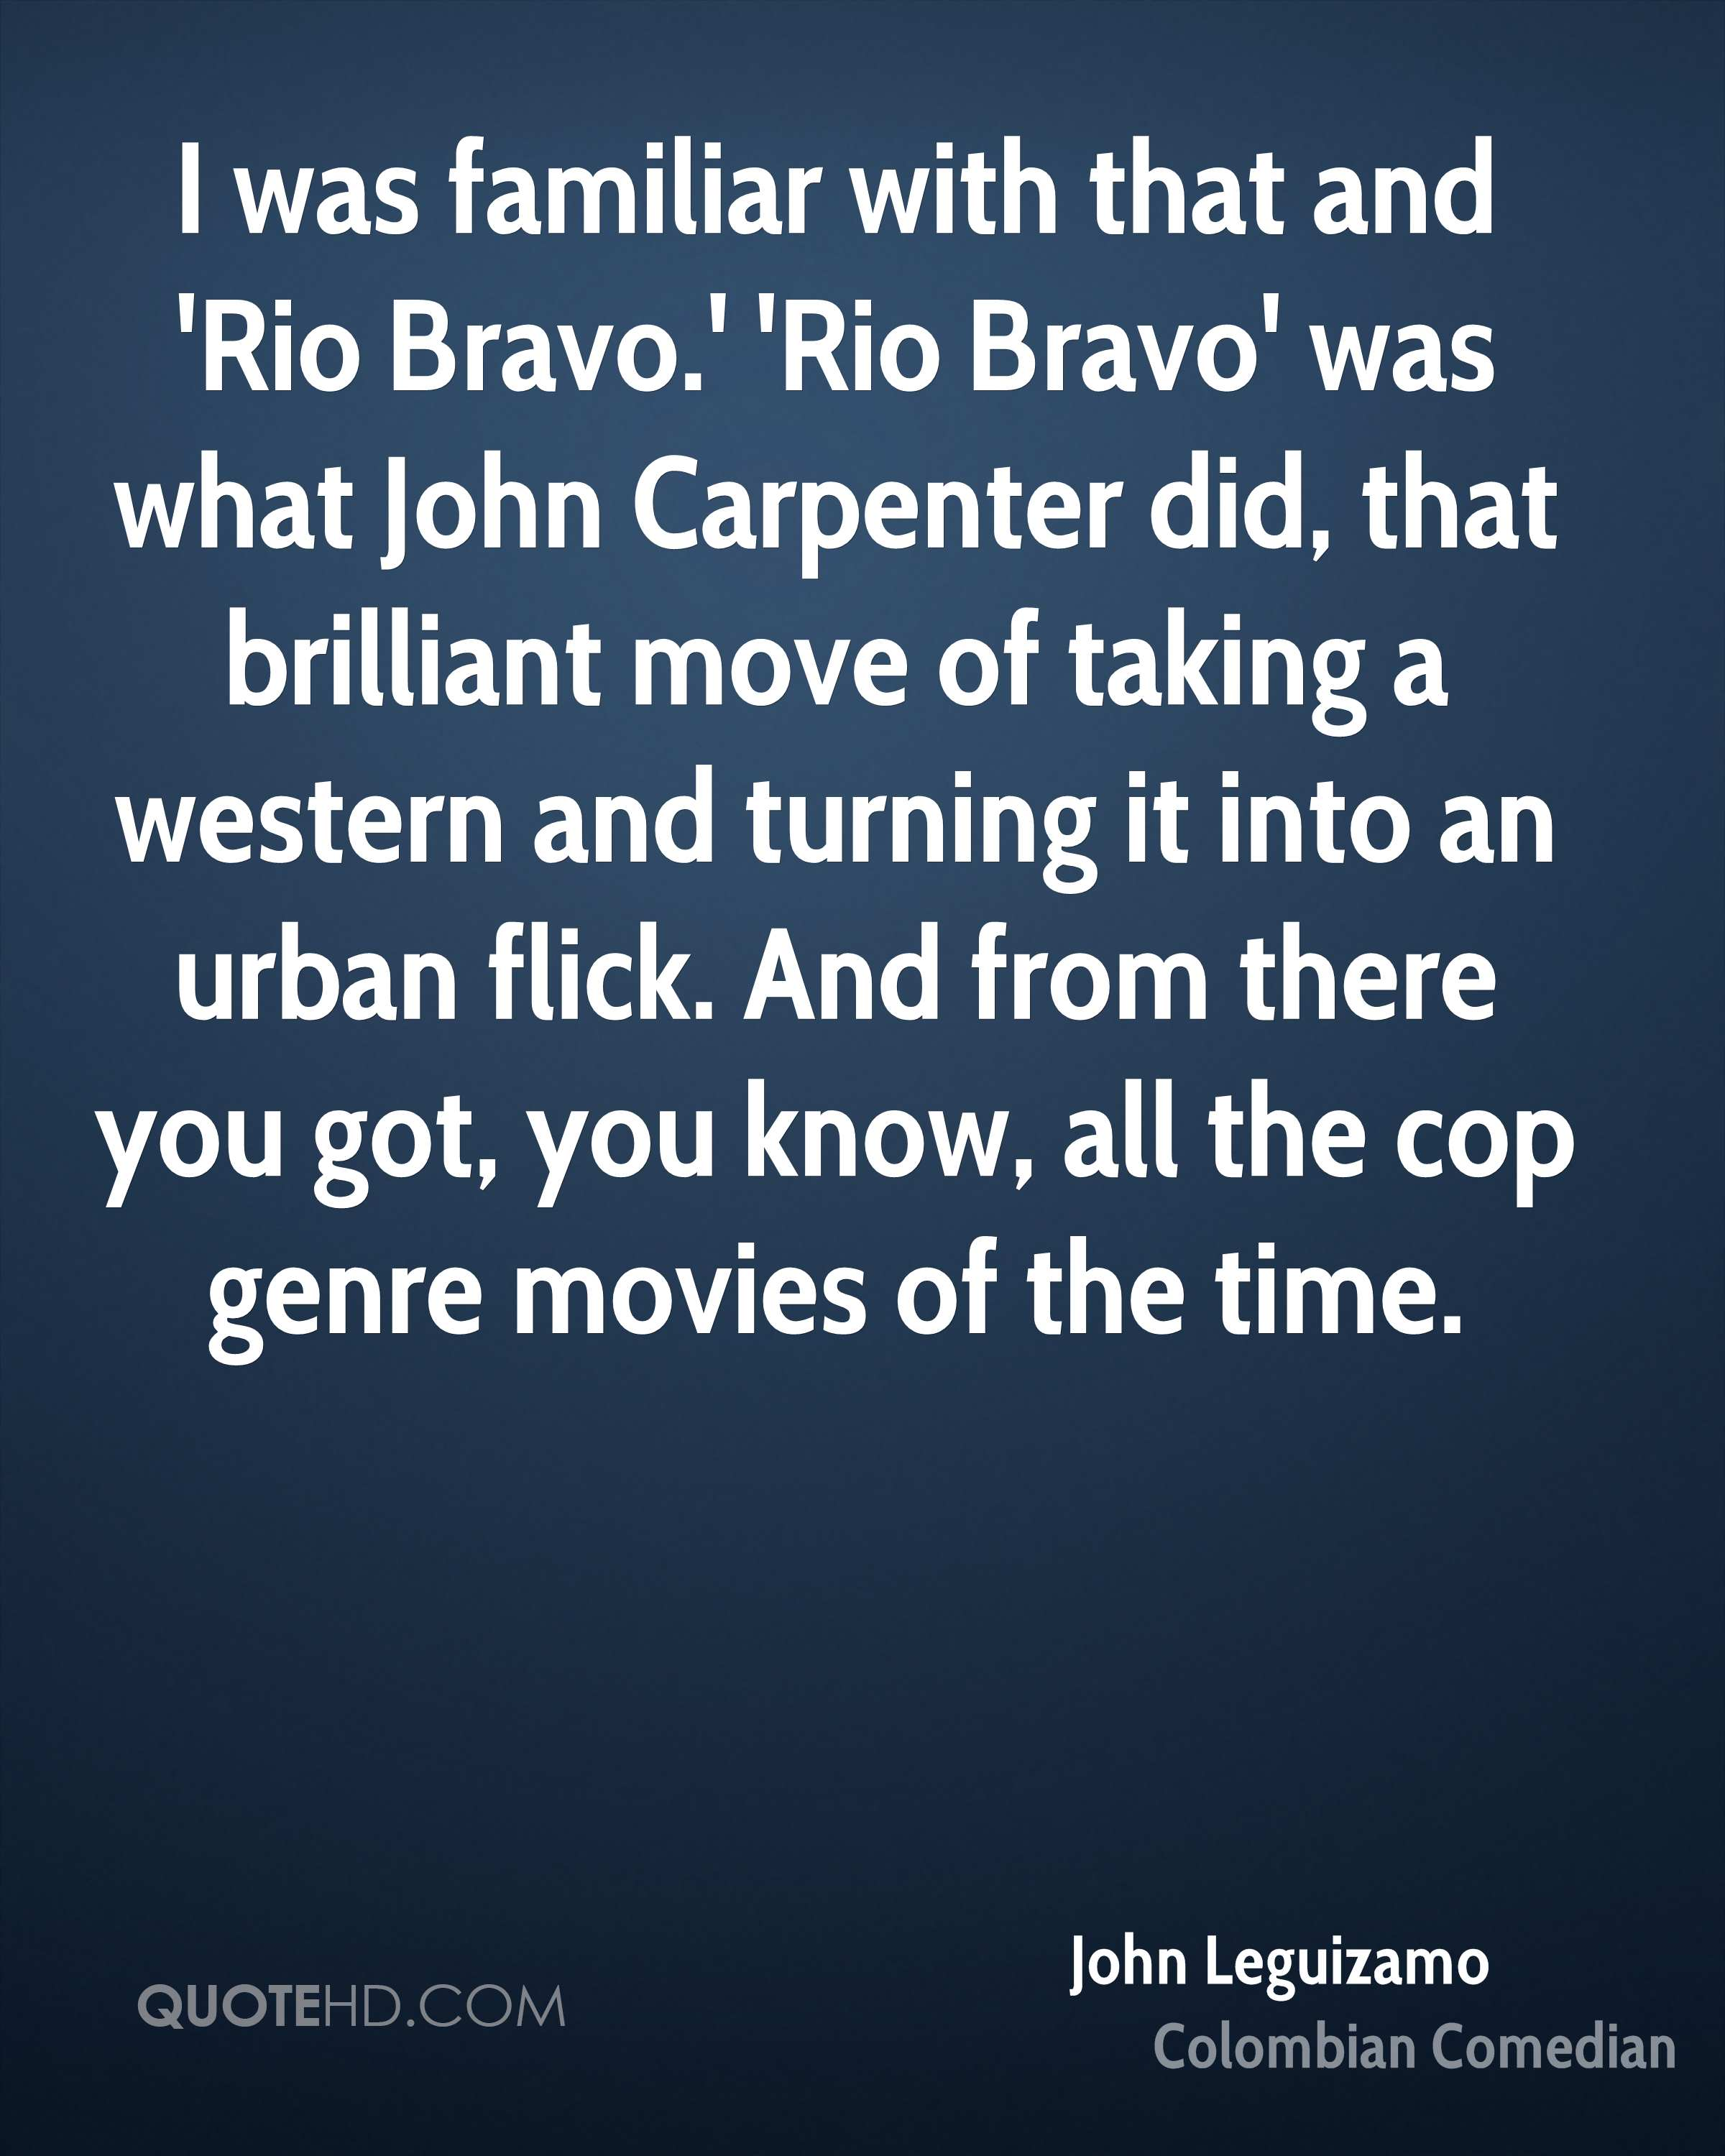 I was familiar with that and 'Rio Bravo.' 'Rio Bravo' was what John Carpenter did, that brilliant move of taking a western and turning it into an urban flick. And from there you got, you know, all the cop genre movies of the time.